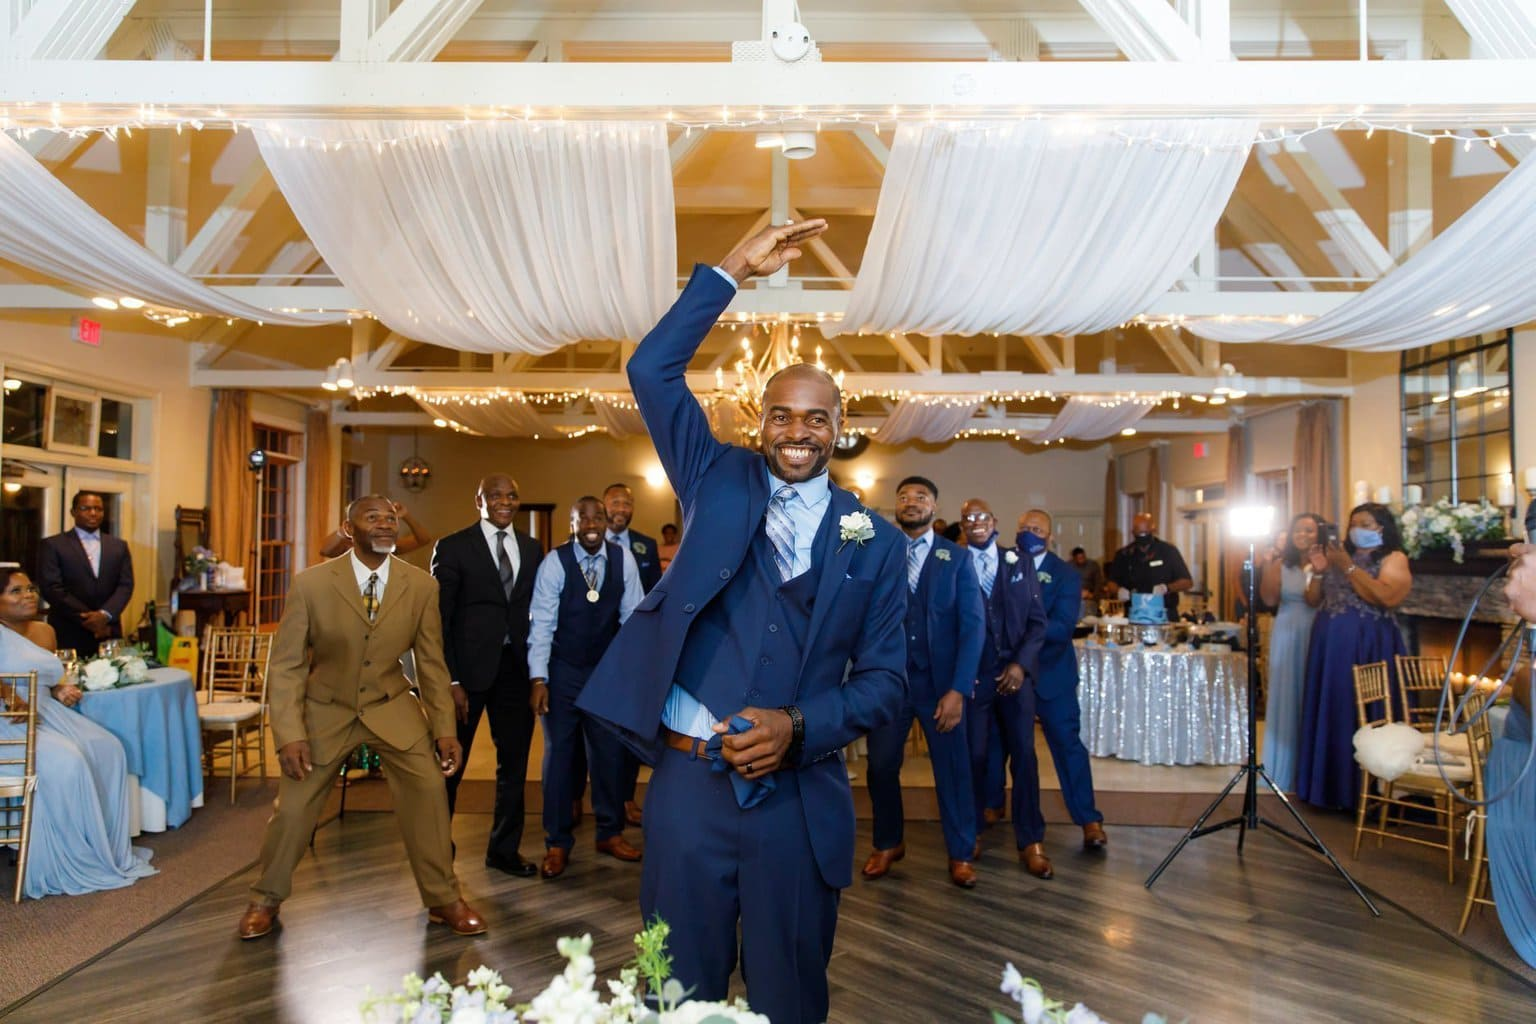 Guarder toss during reception